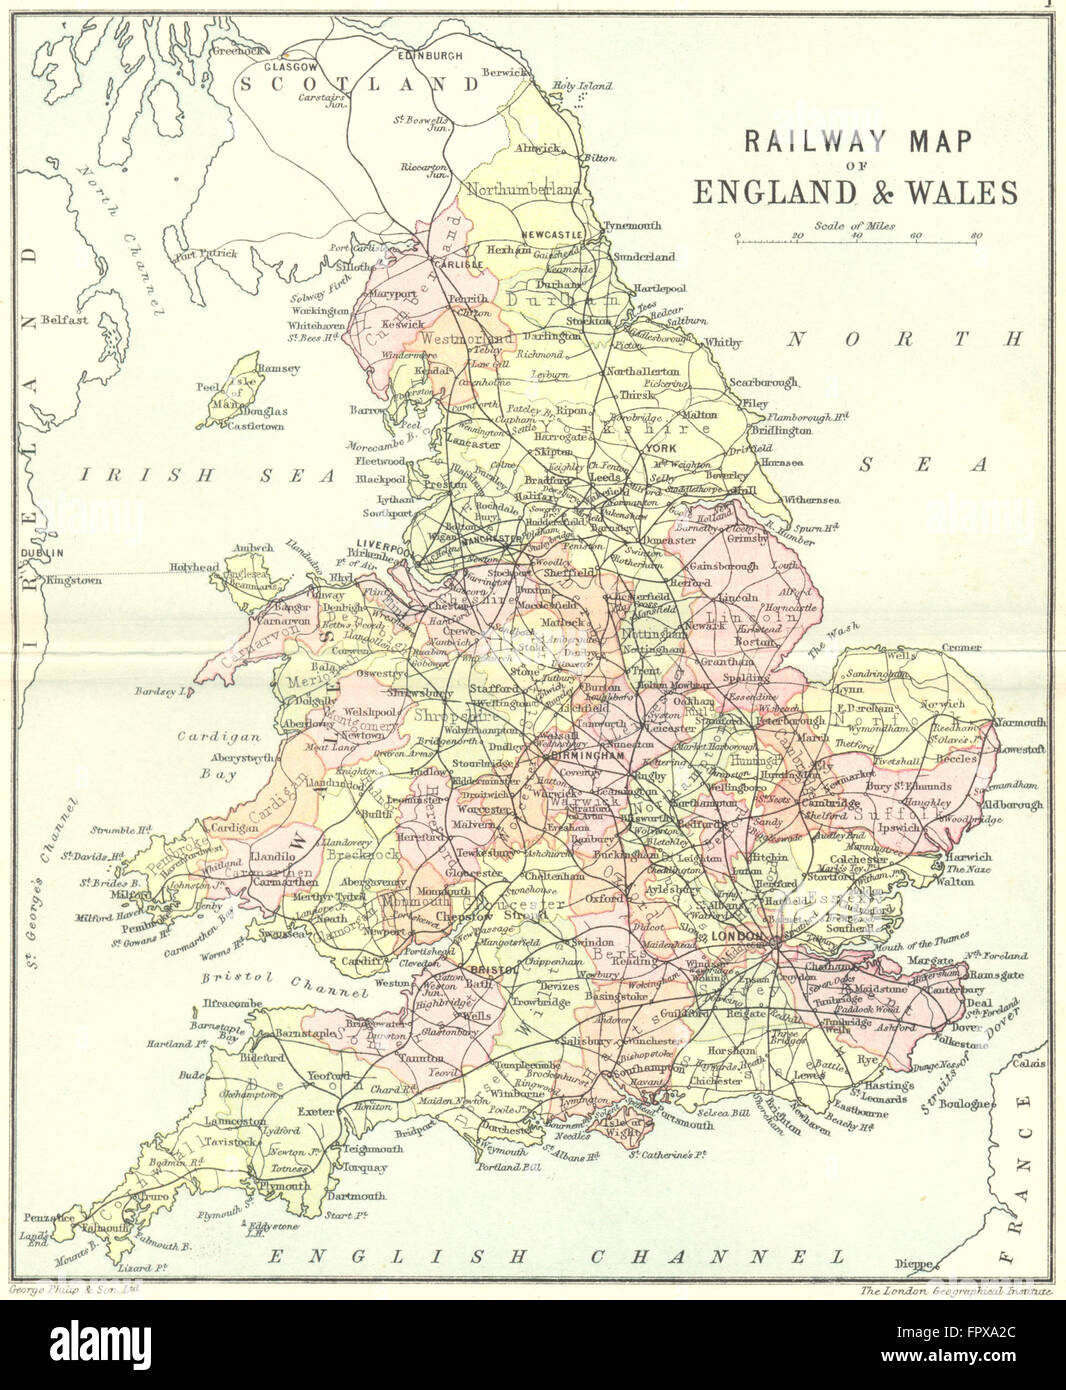 Uk Railway England Wales England Wales Philip 1890 Antique Map